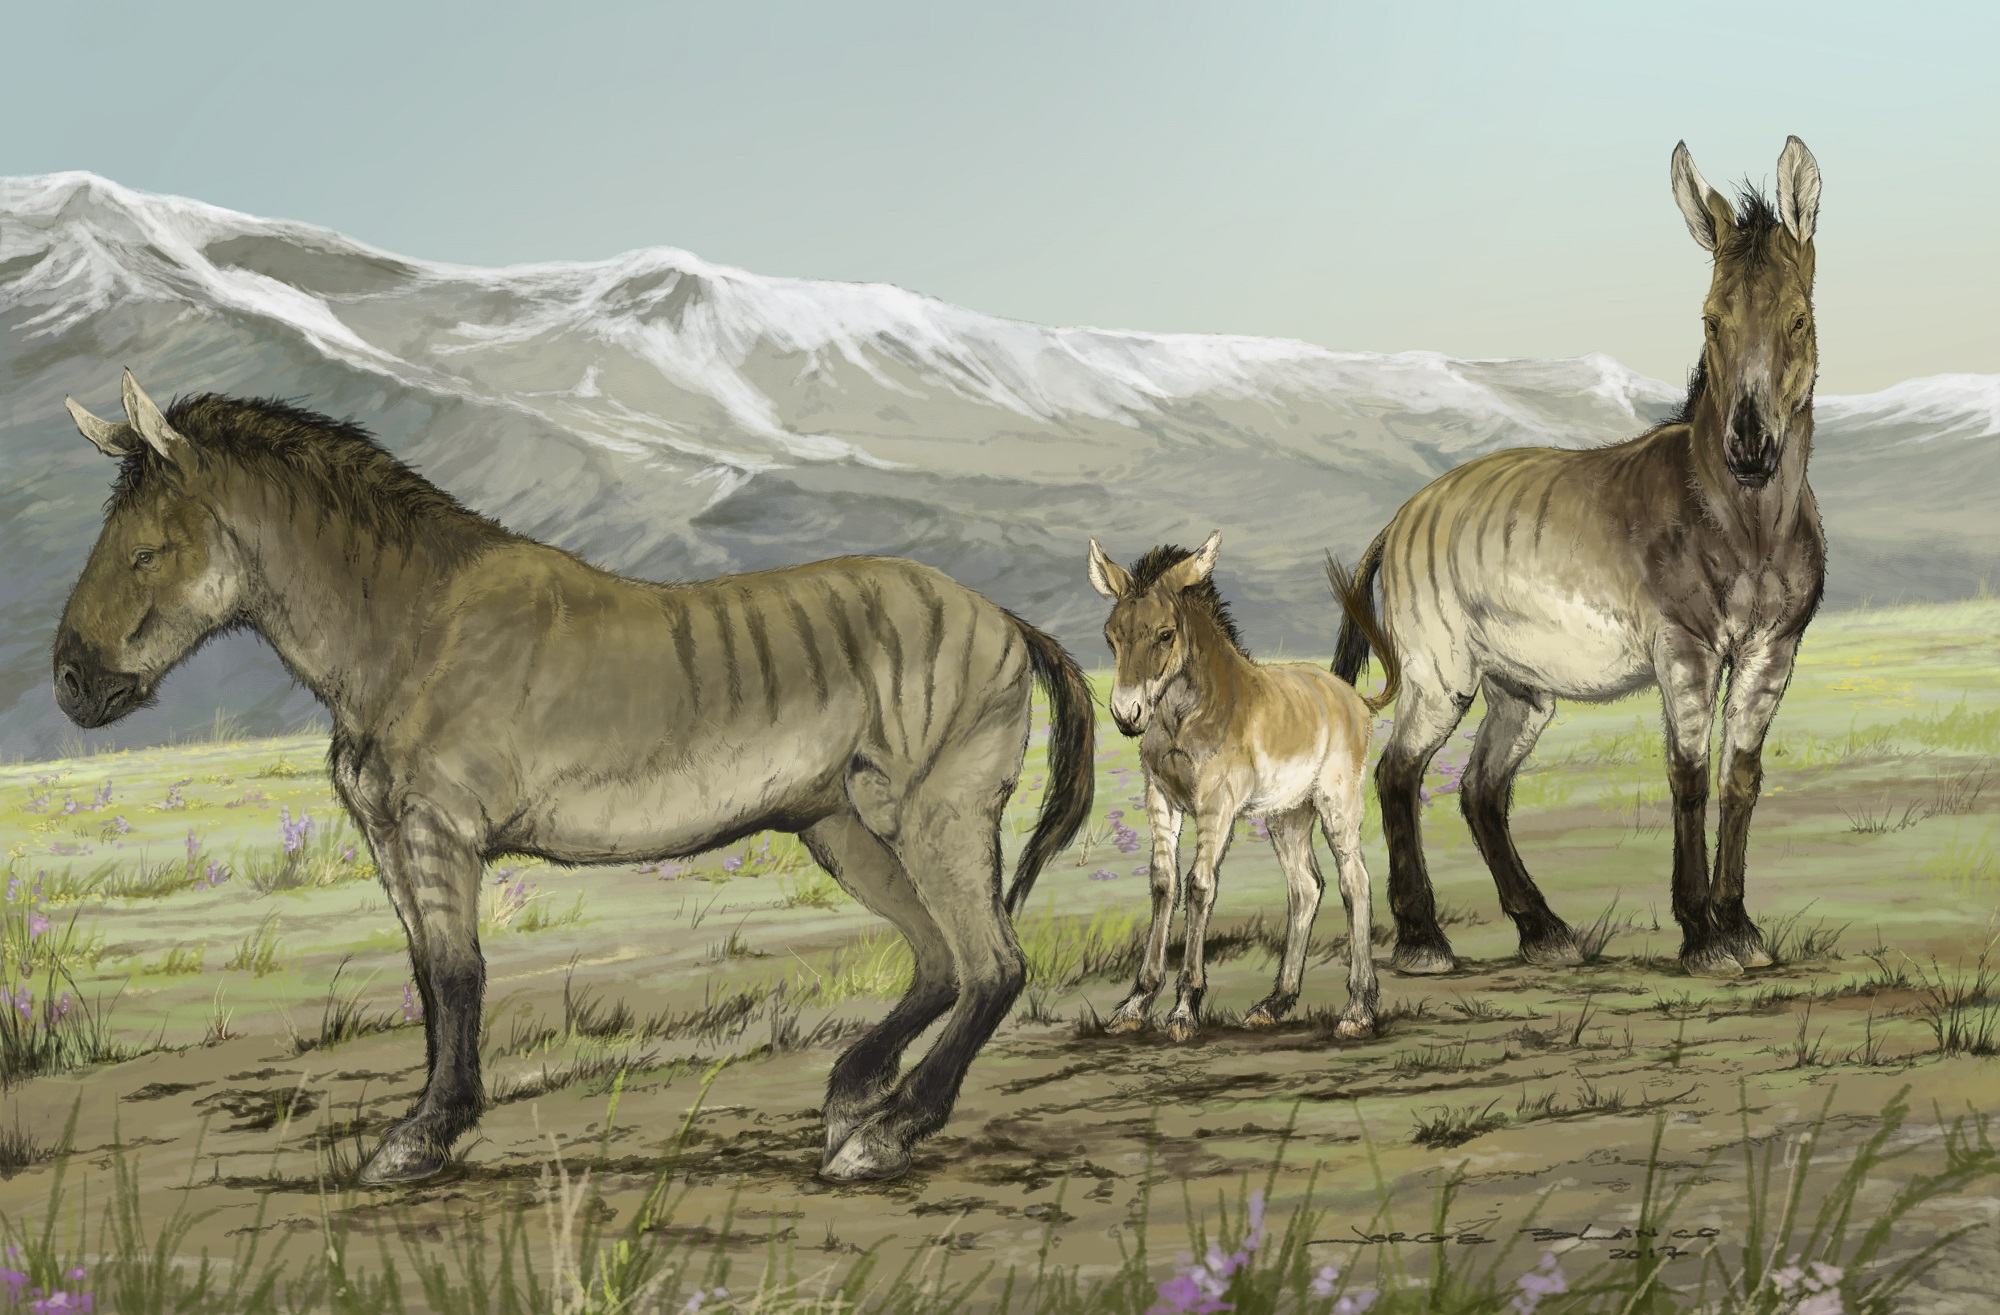 A family of stilt-legged equids (Haringtonhippus francisci) in Yukon, Canada during the last ice age.